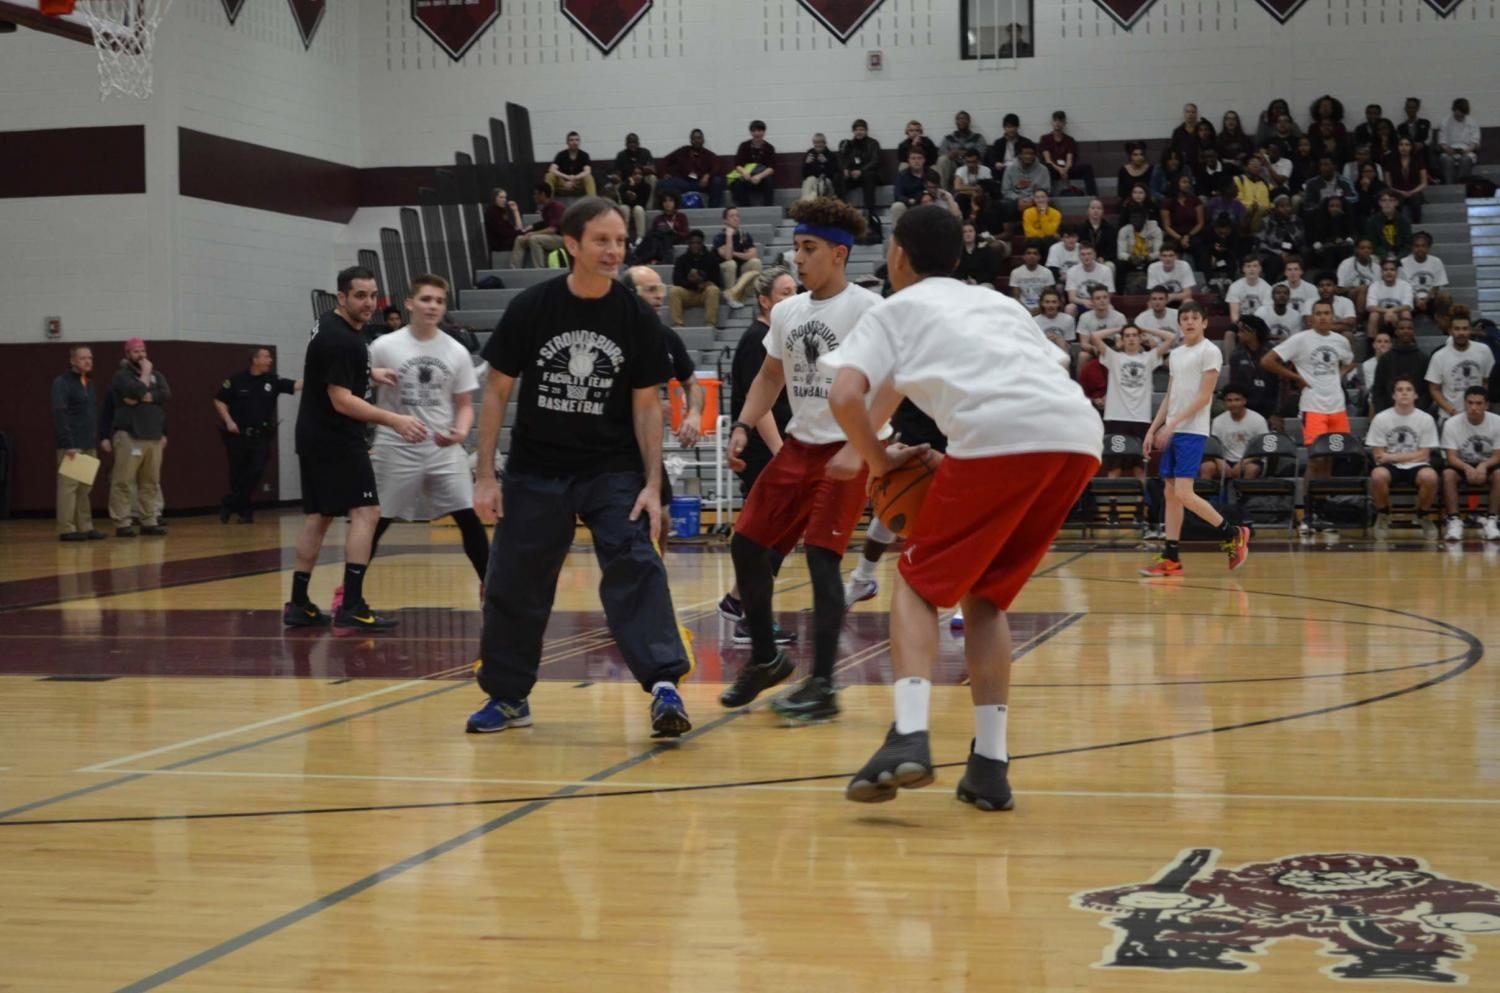 Faculty vs. Students Basketball Game